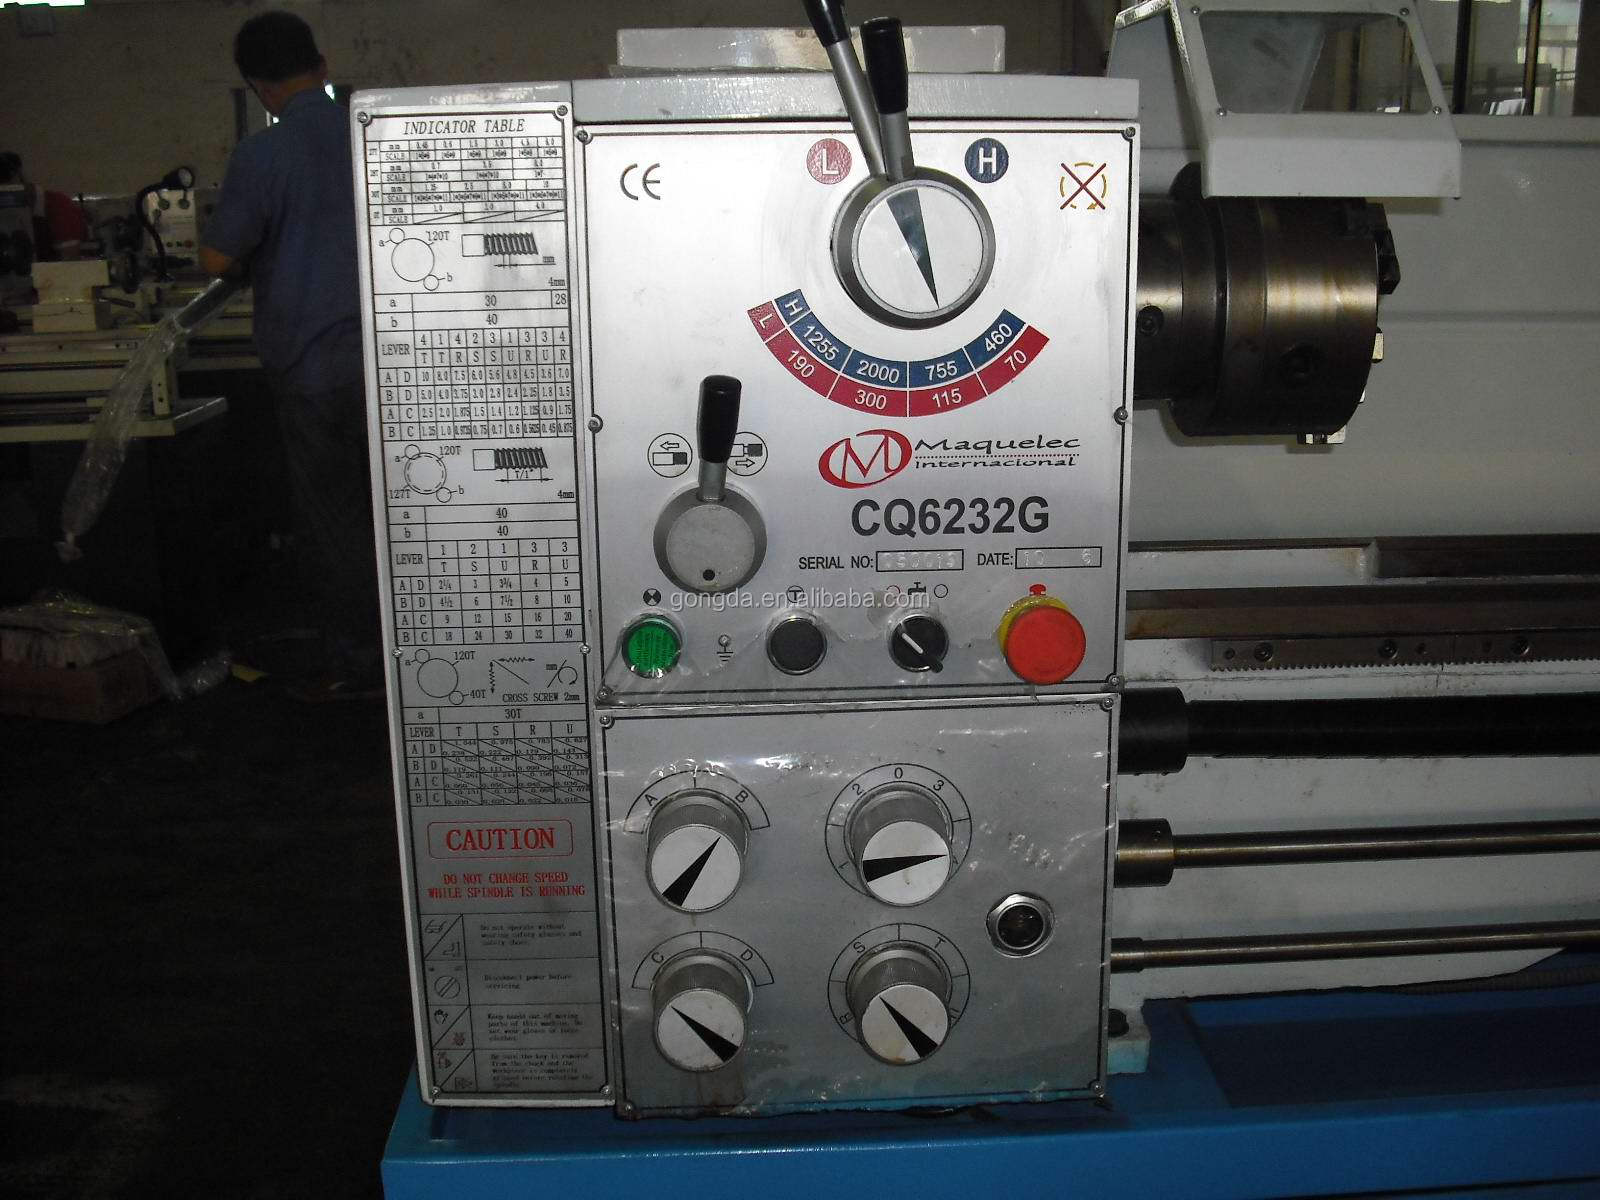 CQ6236G high quality universal lathe, metal lathe, parallel lathe, engine lathe big bore 52mm at a discount